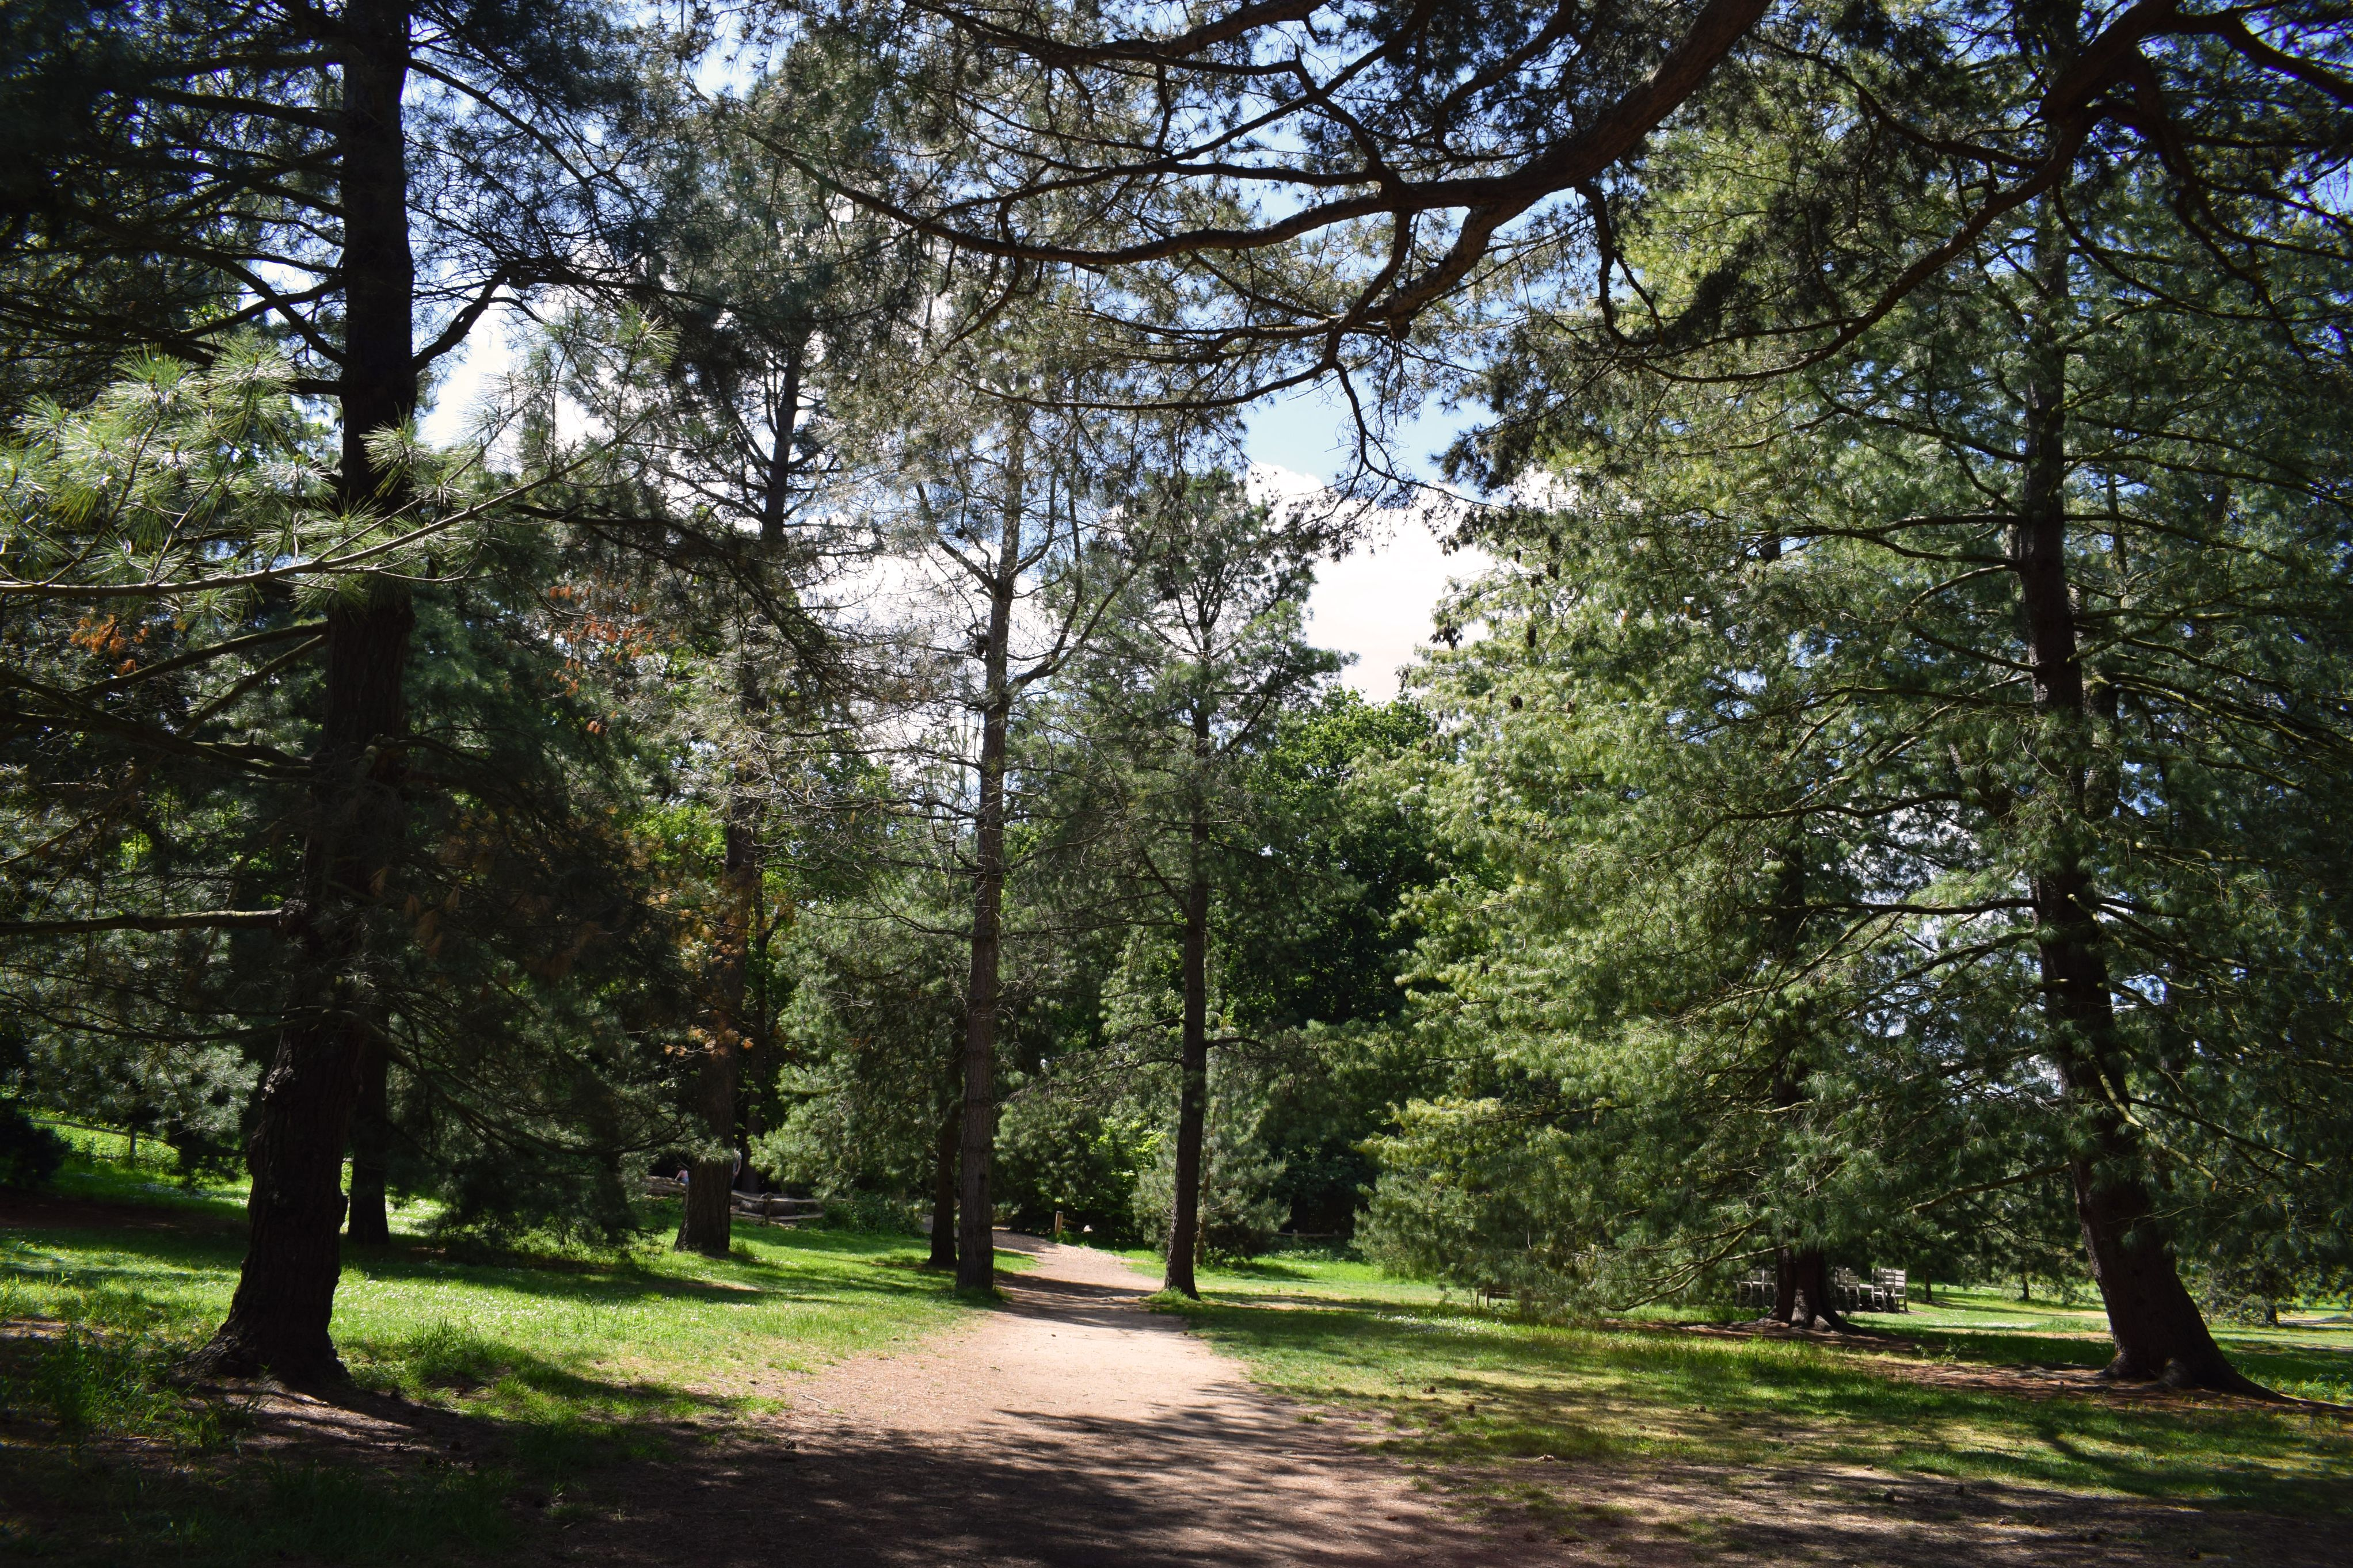 Several conifer trees within the Pinetum of Kew Gardens